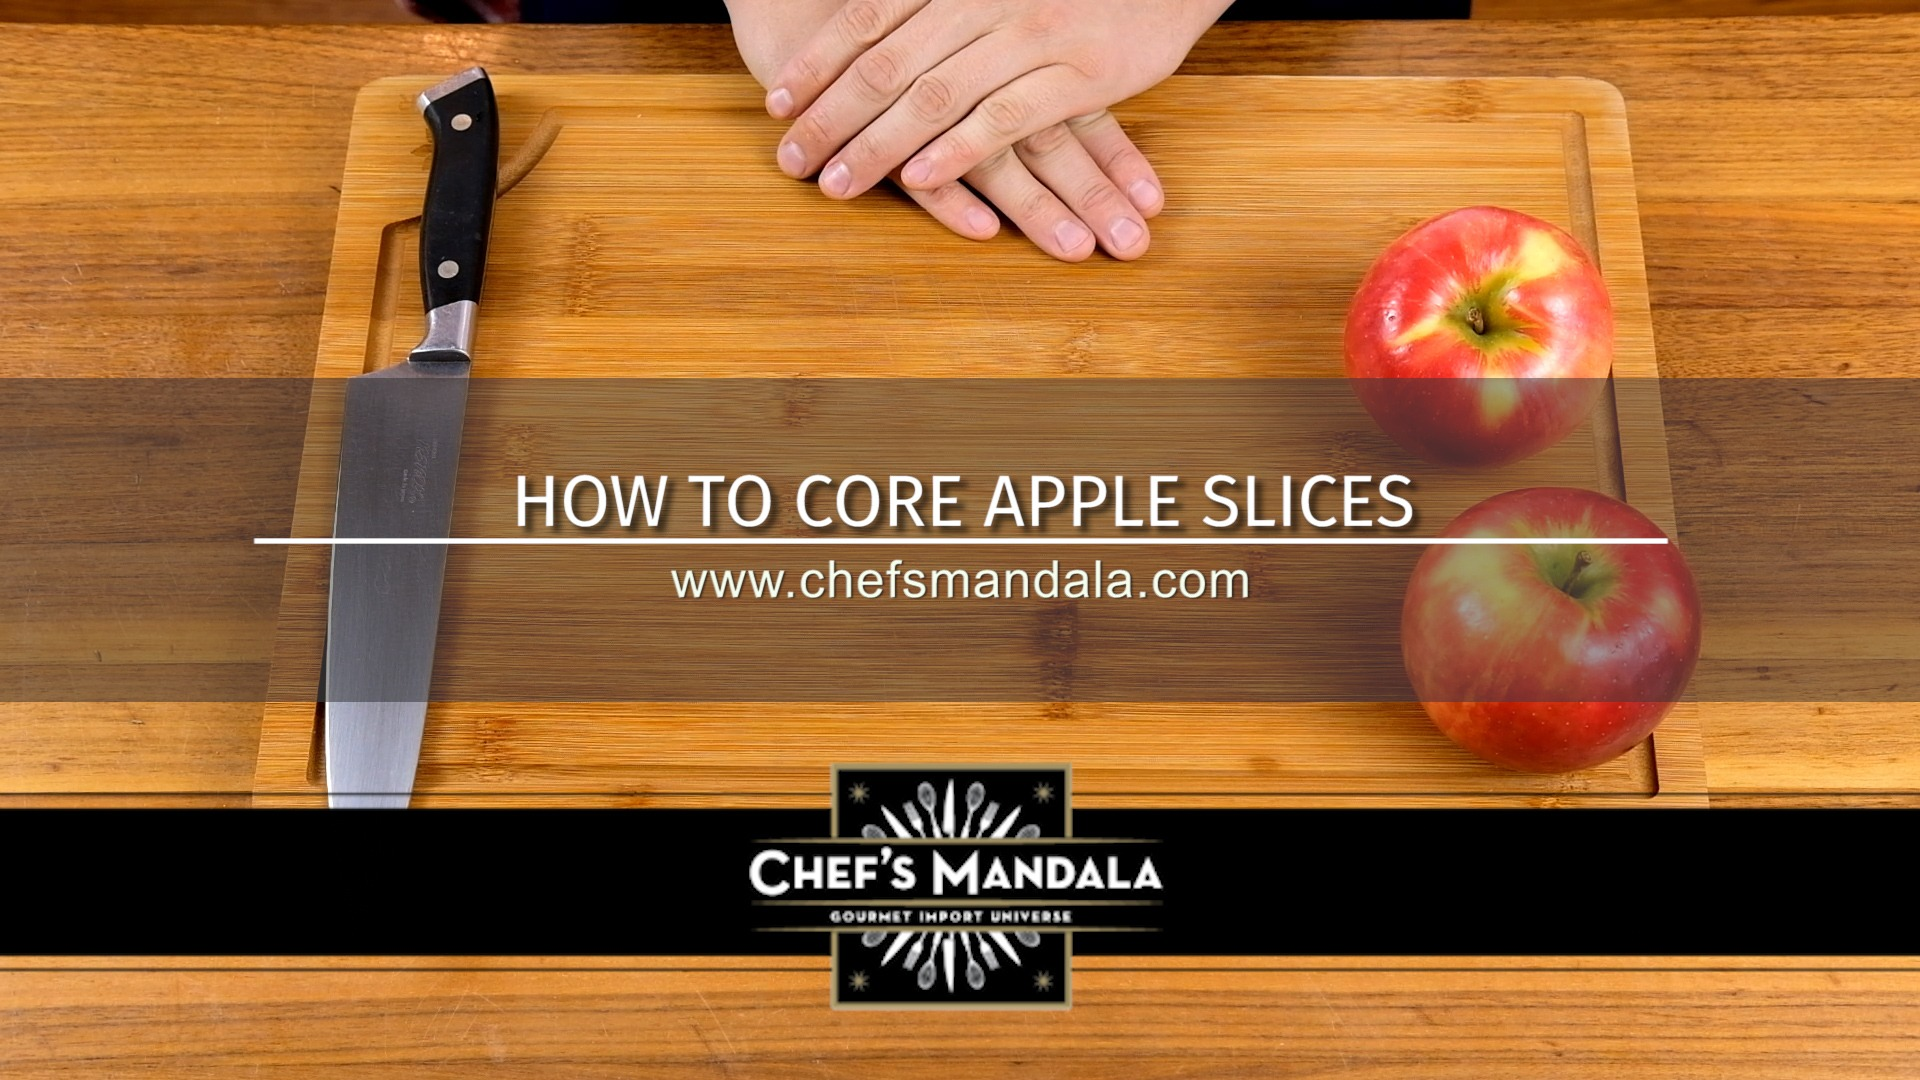 HOW TO CORE APPLE SLICES